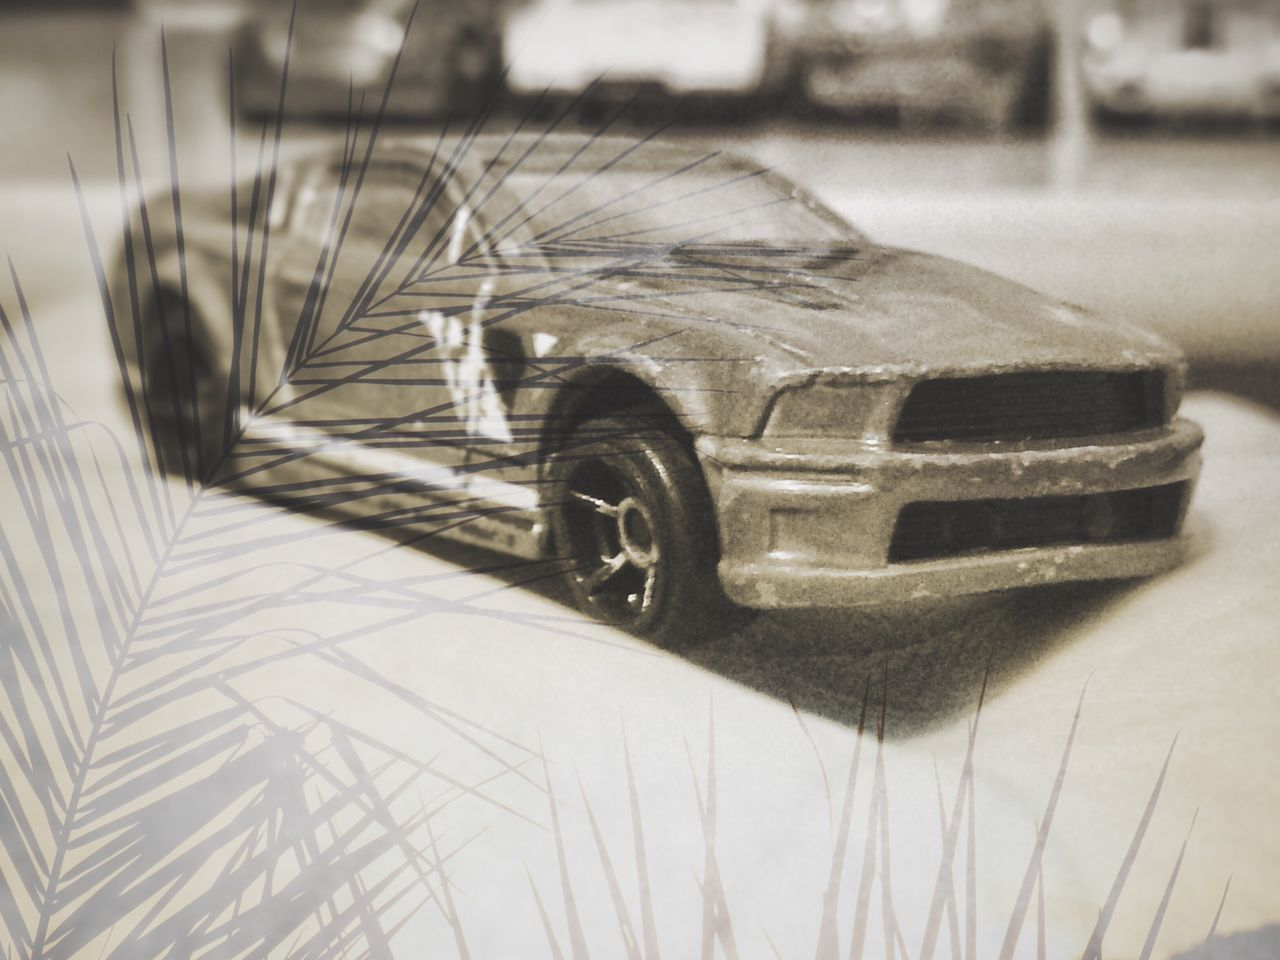 CLOSE-UP OF TOY CAR IN CONTAINER